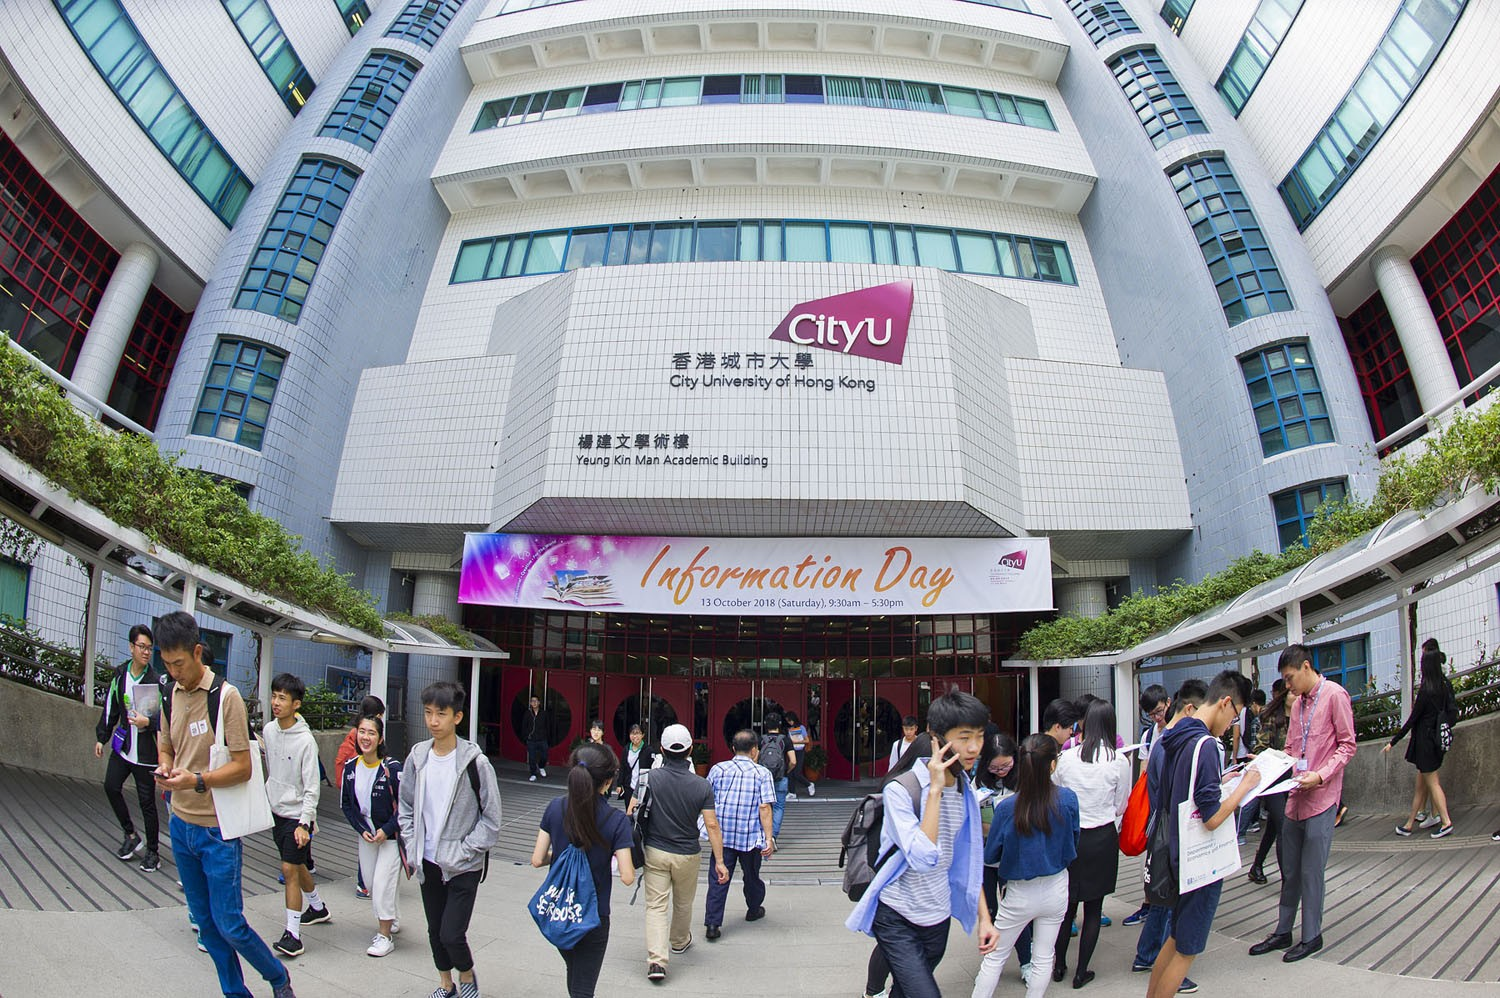 Students and their parents find out more about the latest academic offerings at CityU during Information Day.